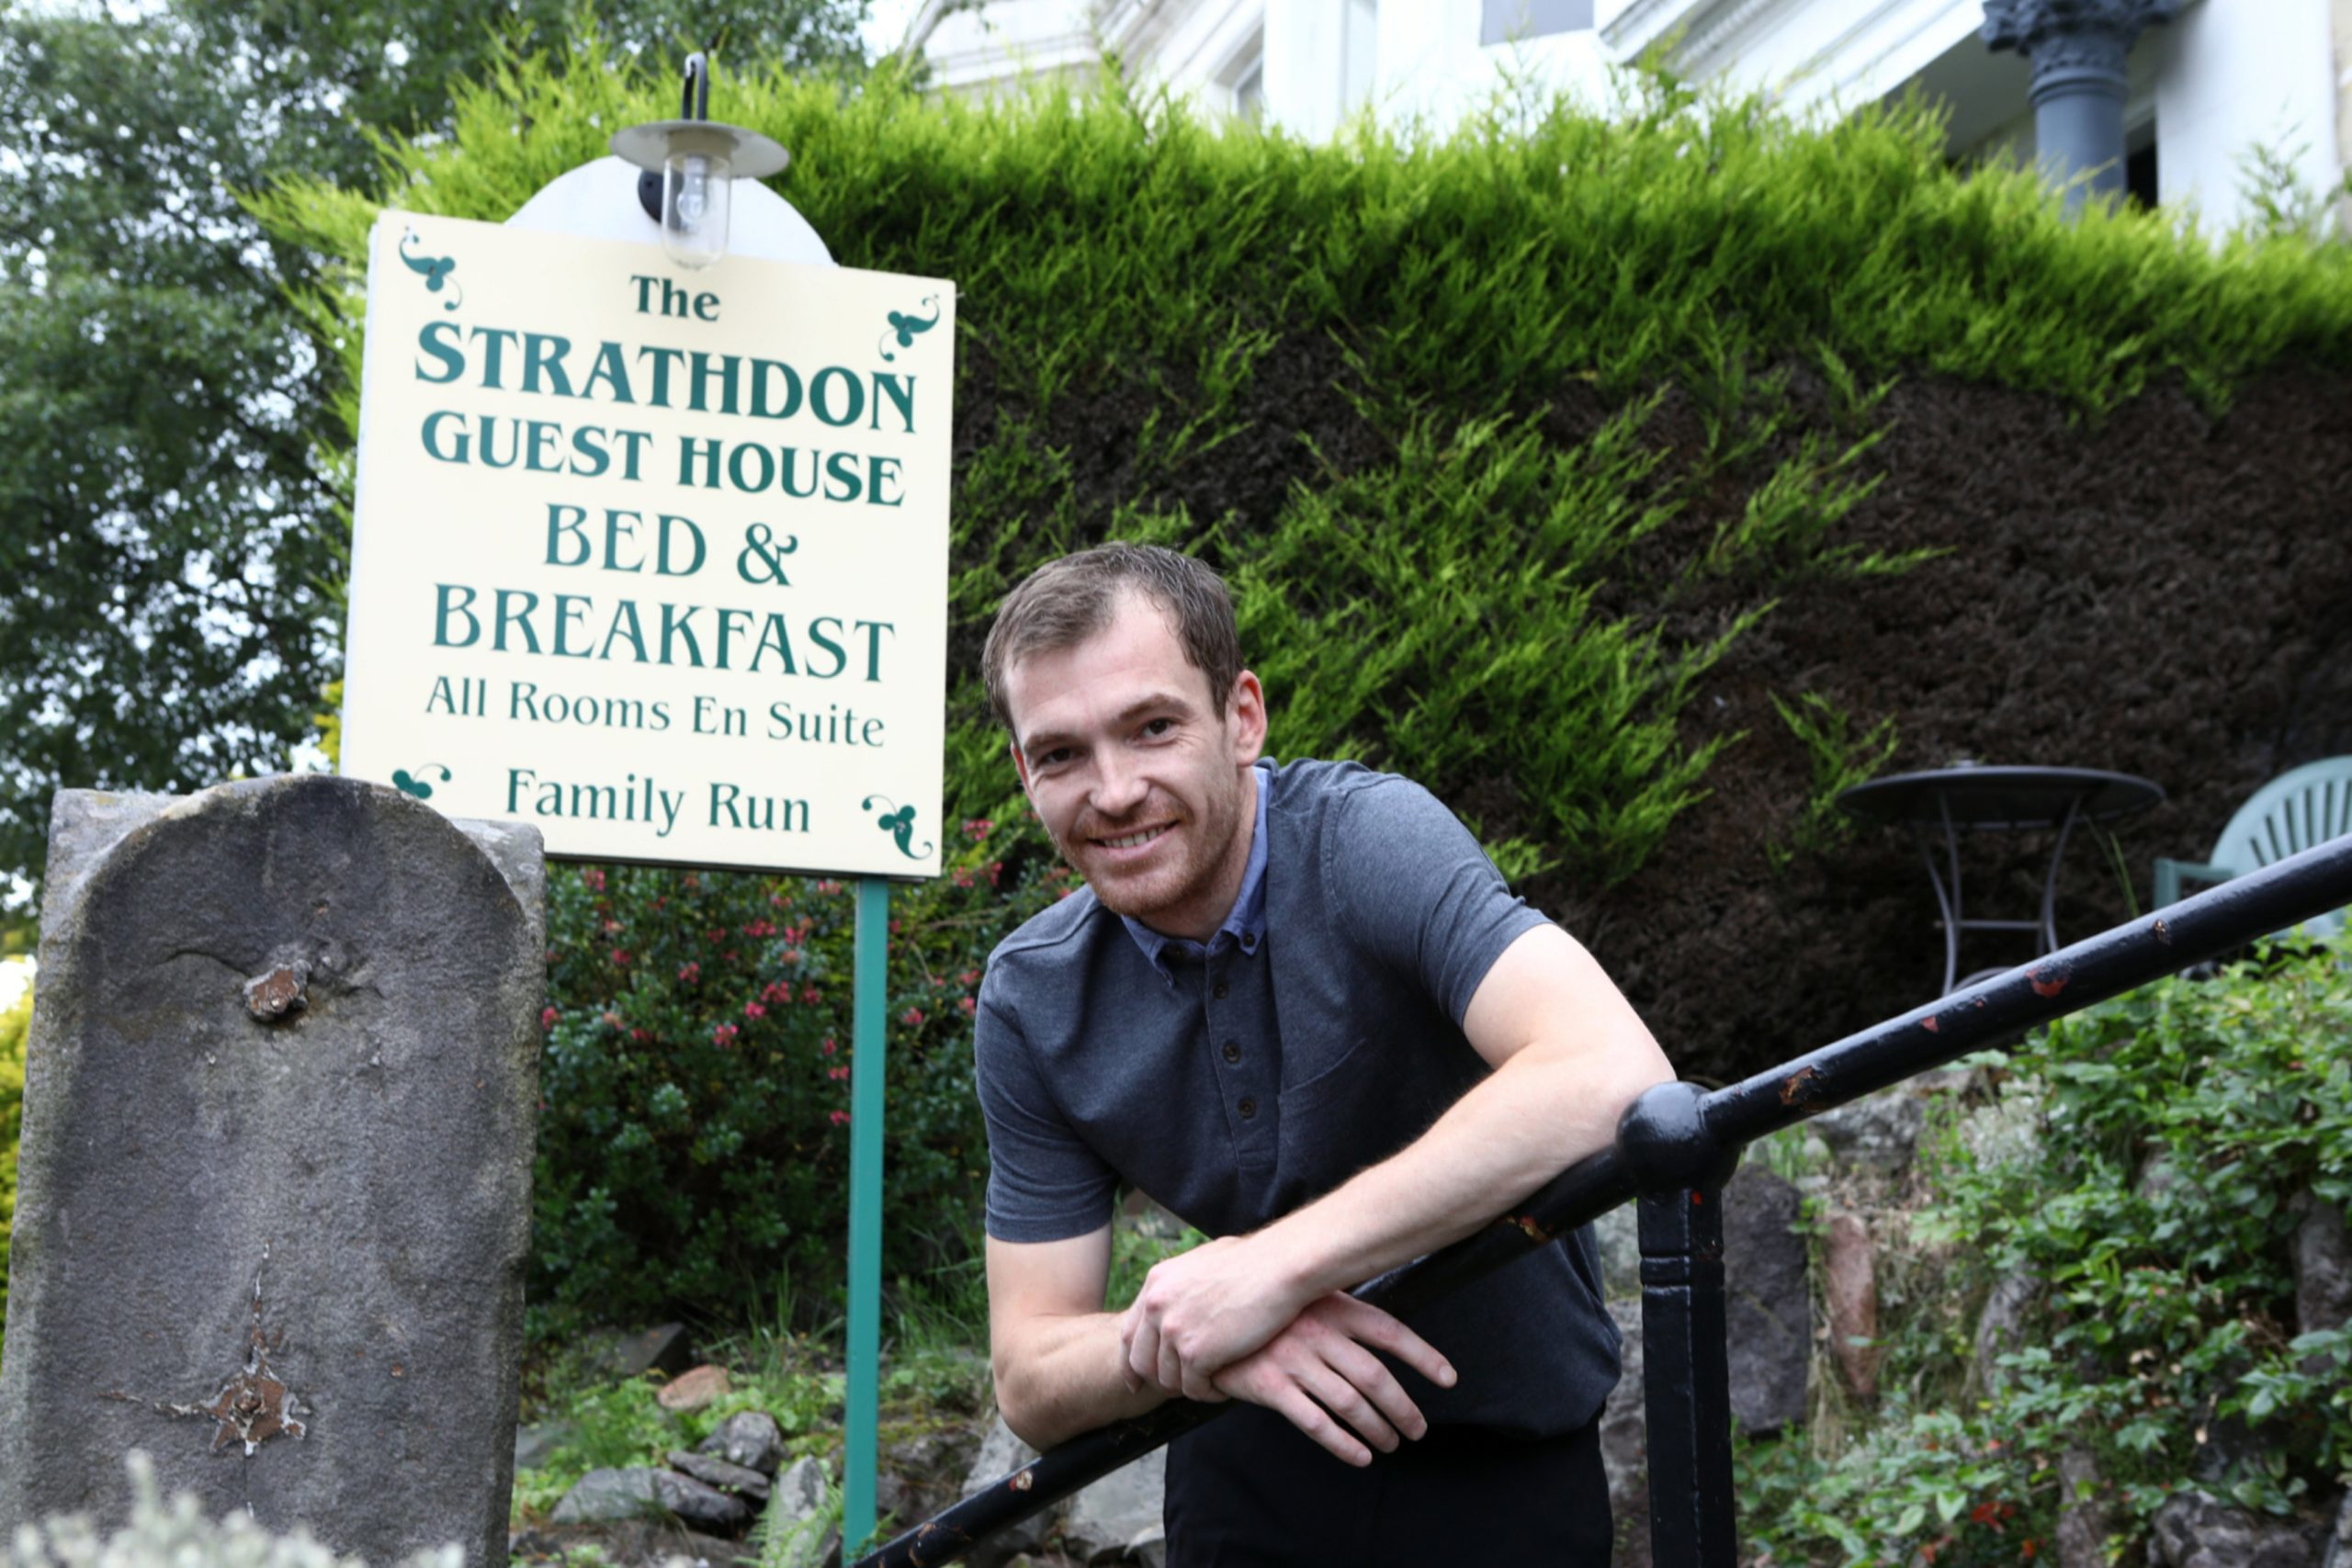 Tom French at the Starthdon Guest House on the Perth Road.